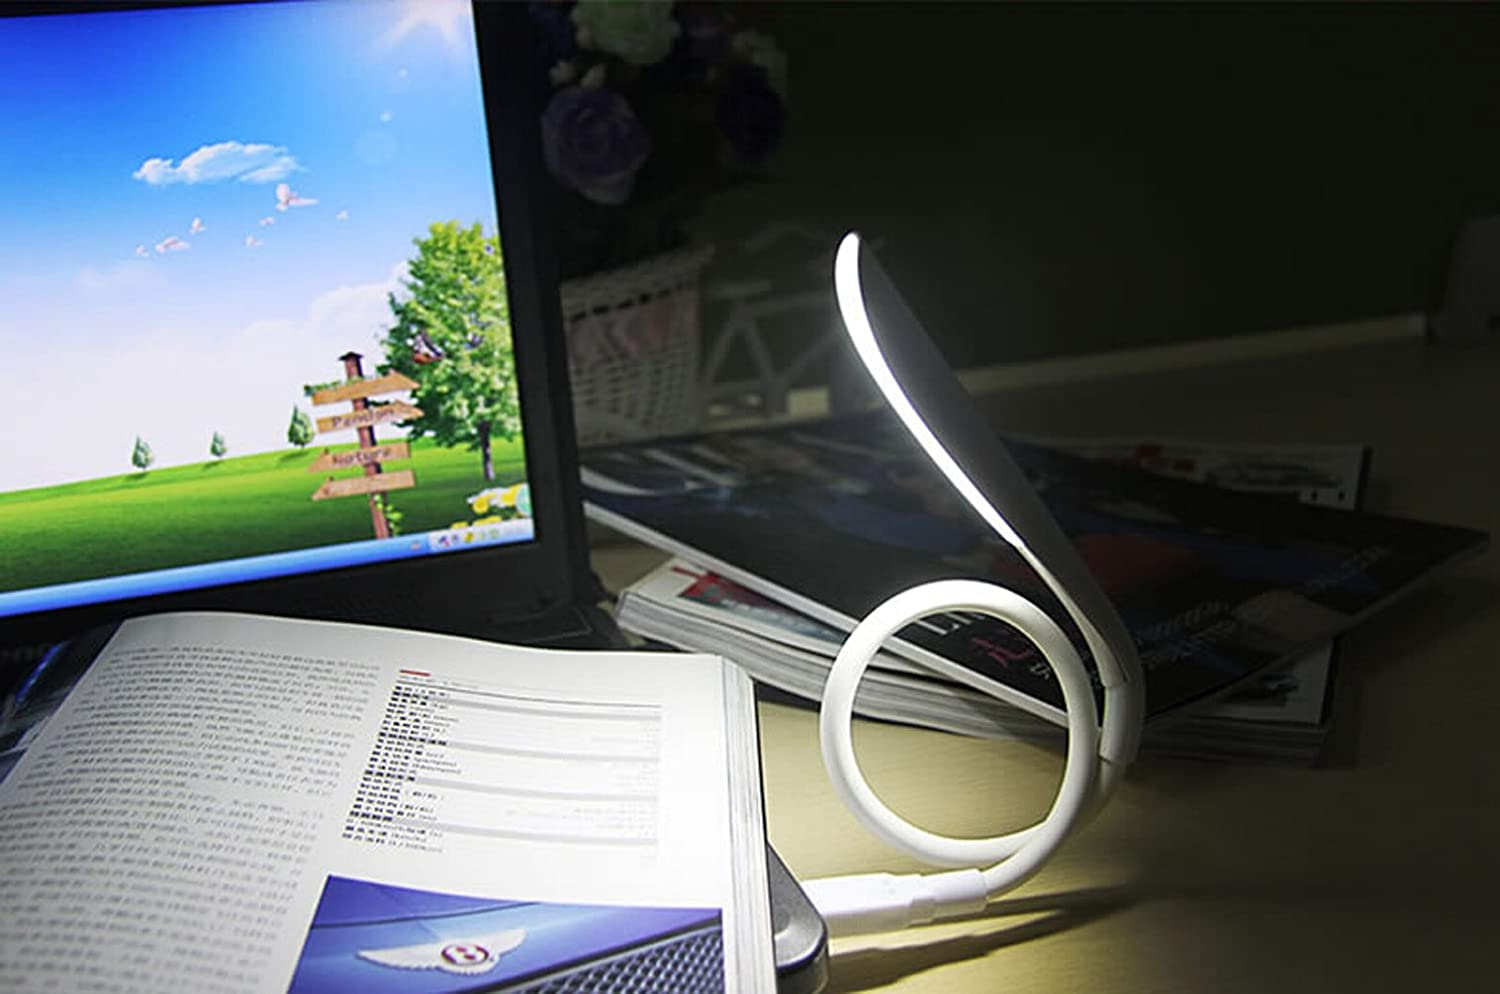 Bxt Mini Flexible Led Usb Light Bed Night Reading Light White Computer Usb Lamp For Laptop Notebook